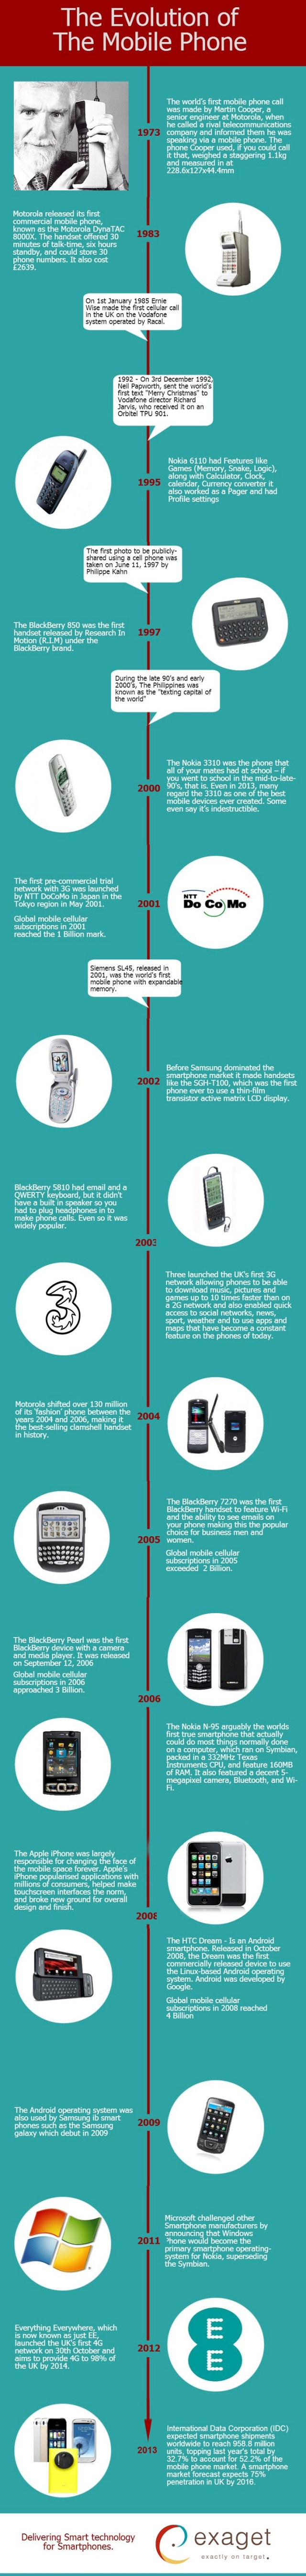 techi-Evolution-of-the-Mobile-Phone-Infographic